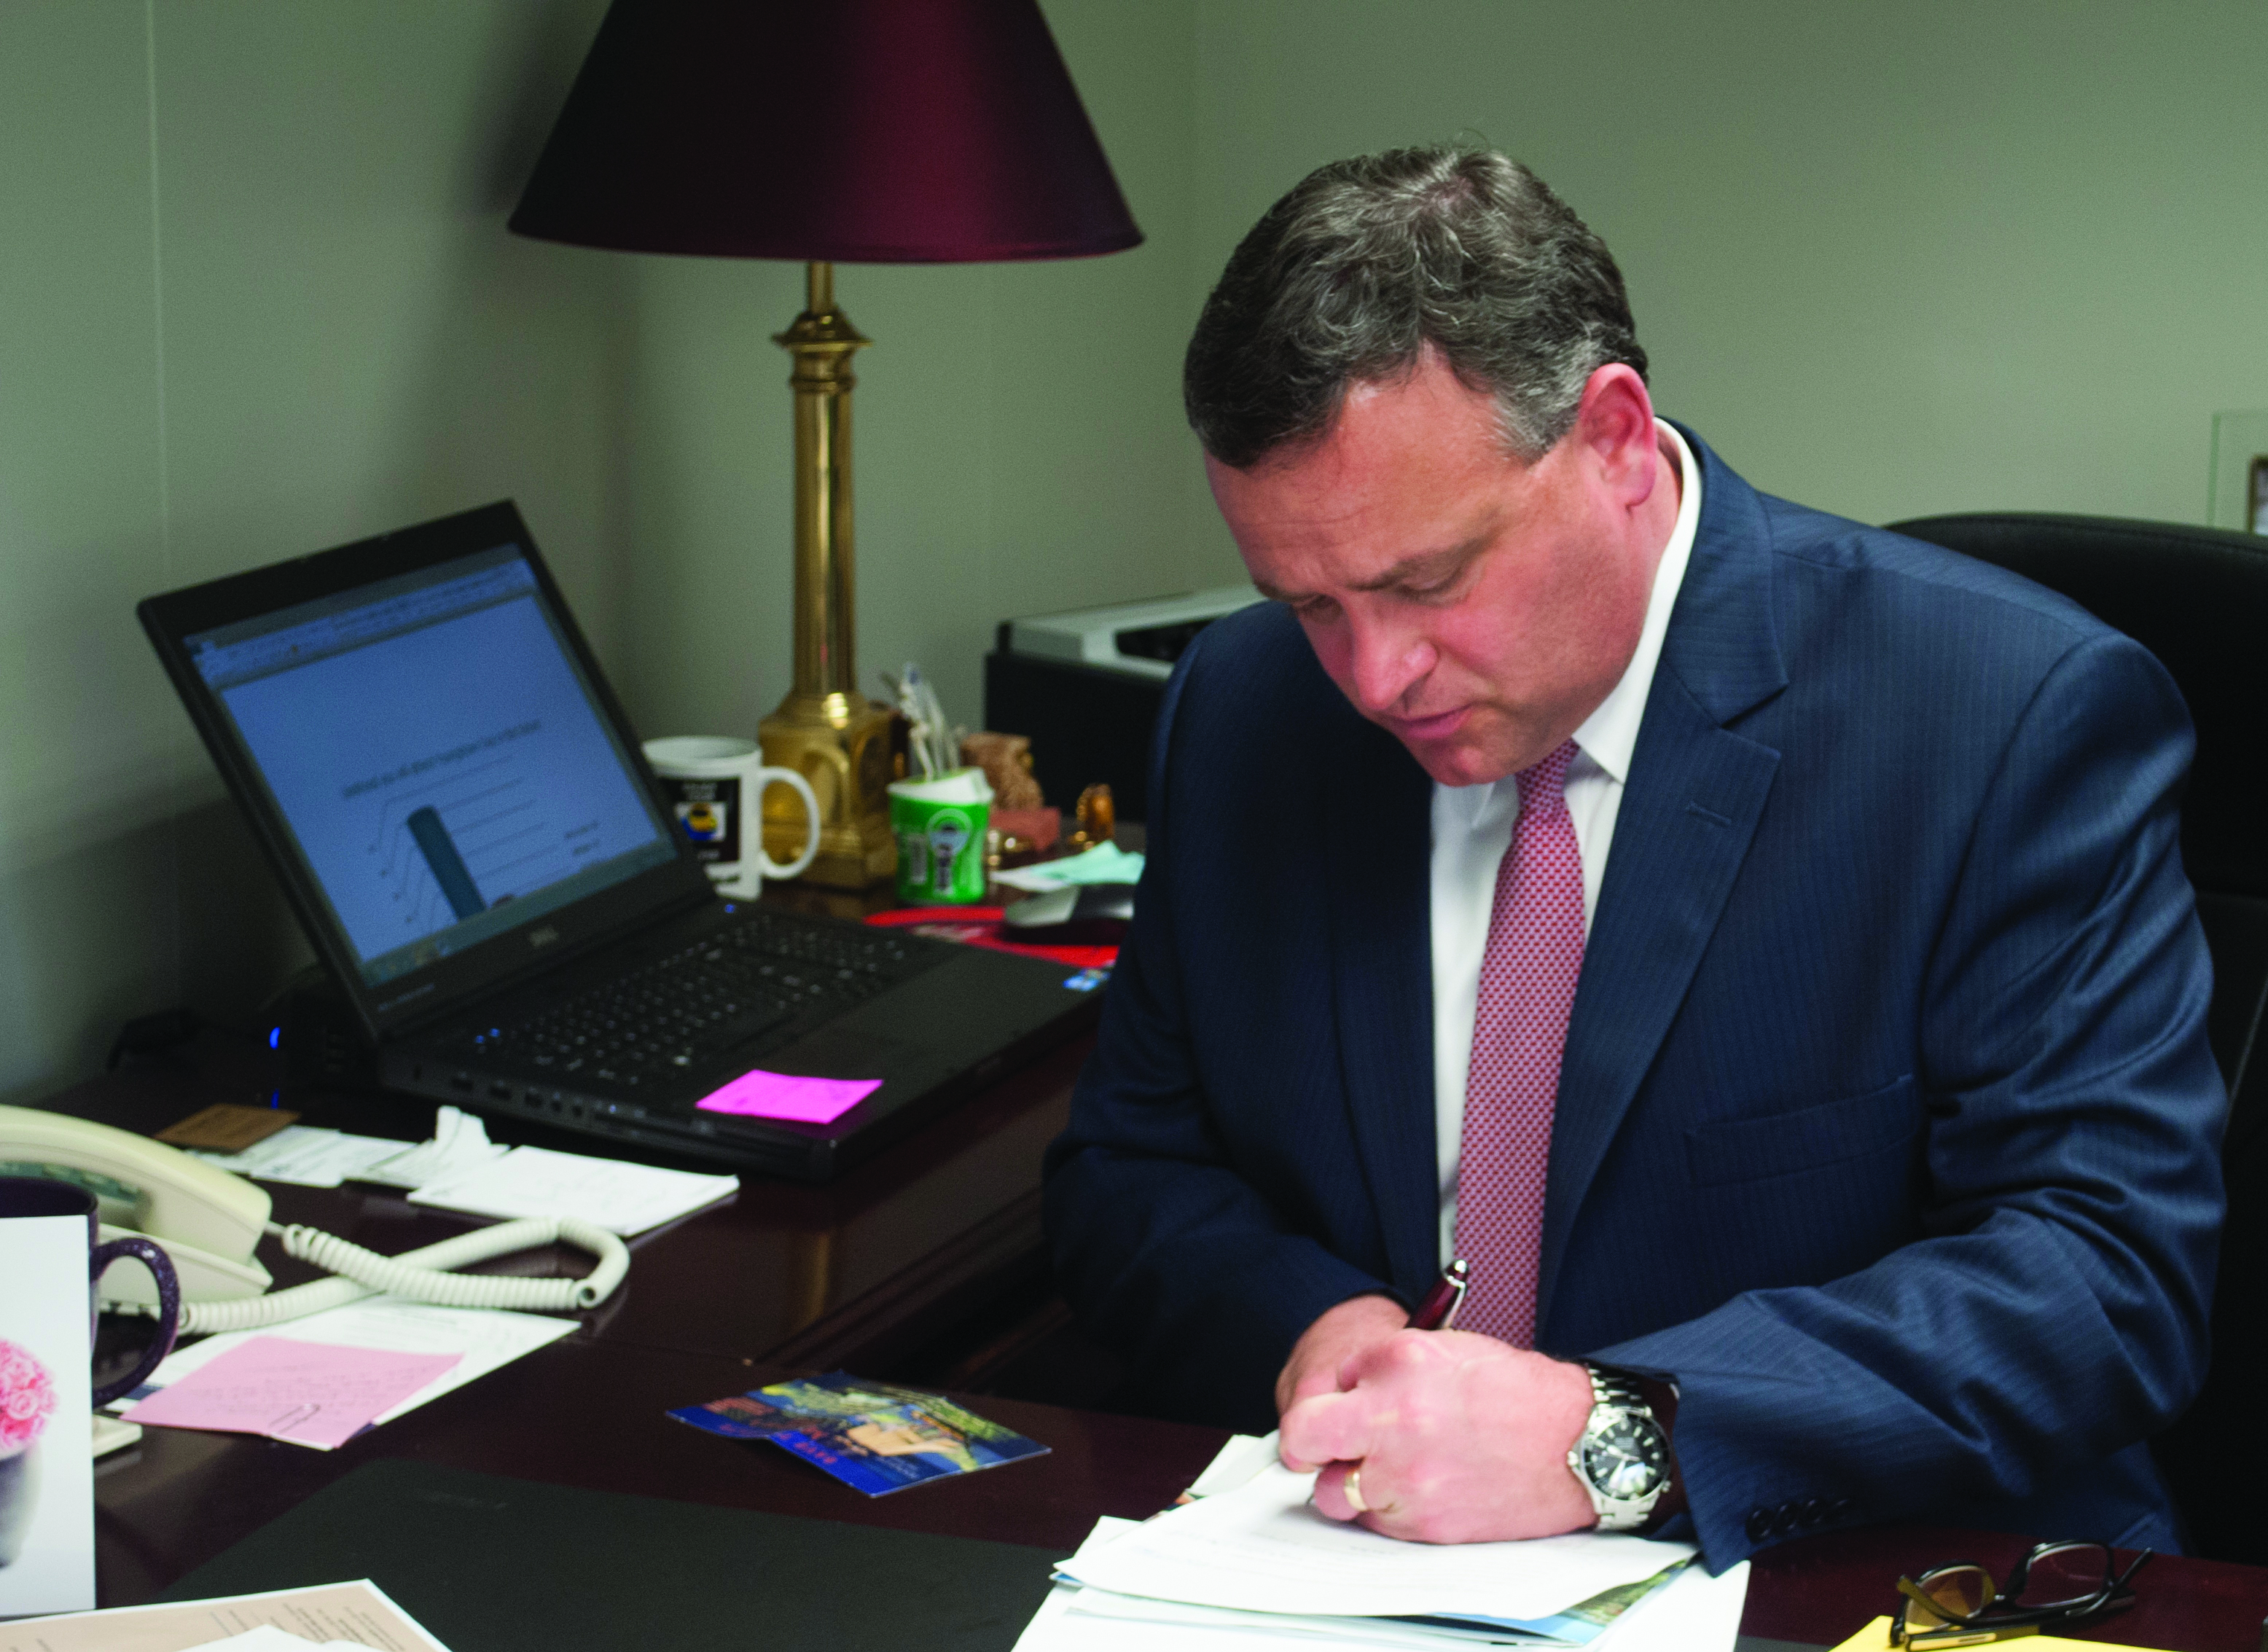 Scott Evans (above), YSU vice president of University Development, is departing for Lake Erie College on May 20, where he will act as senior vice president for Institutional Advancement and chief of President's Staff.